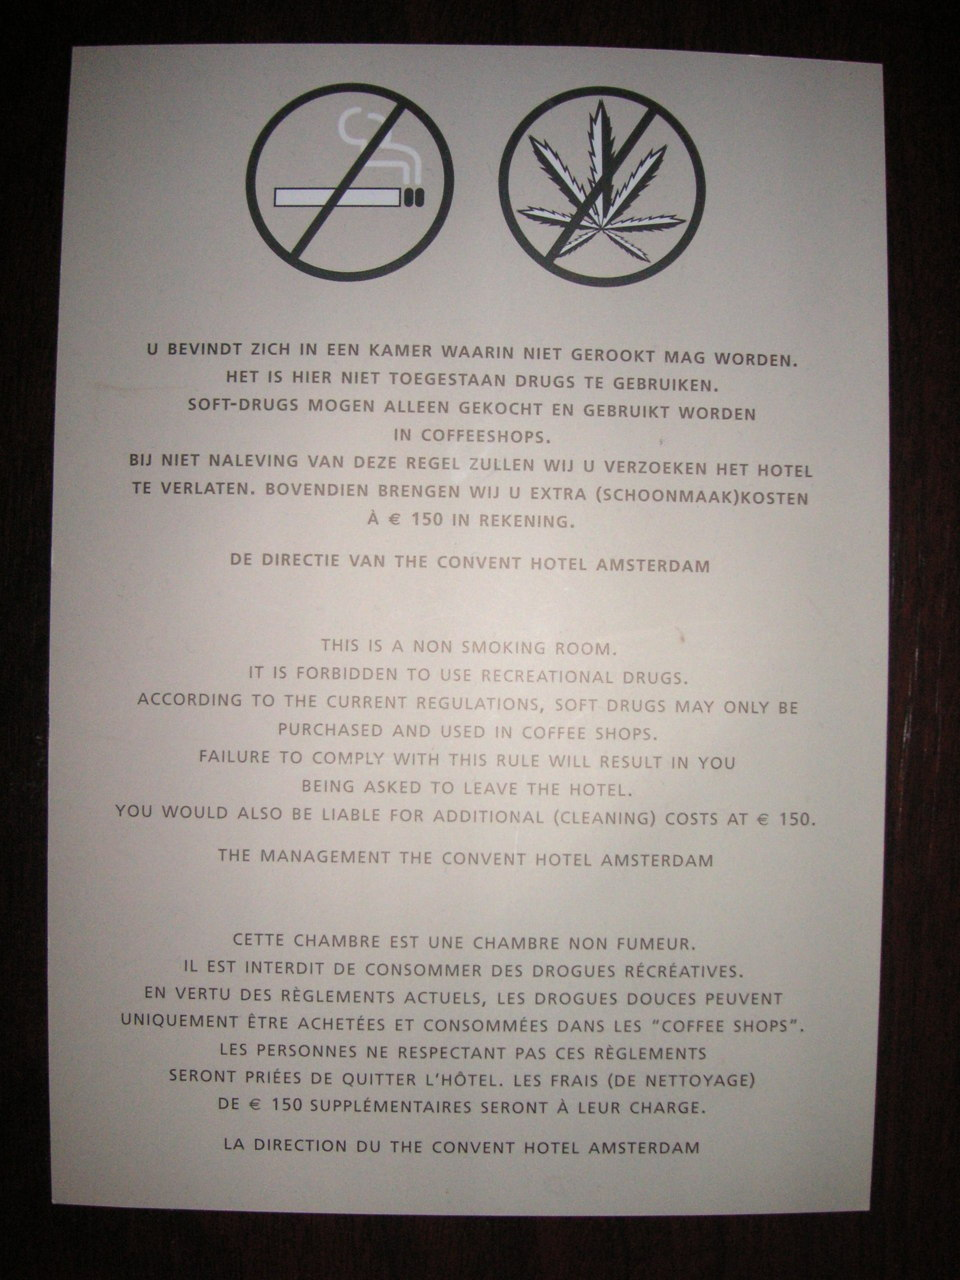 A sign inside a hotel room in Amsterdam, Amsterdam, Netherlands.  Taken in May 2010.